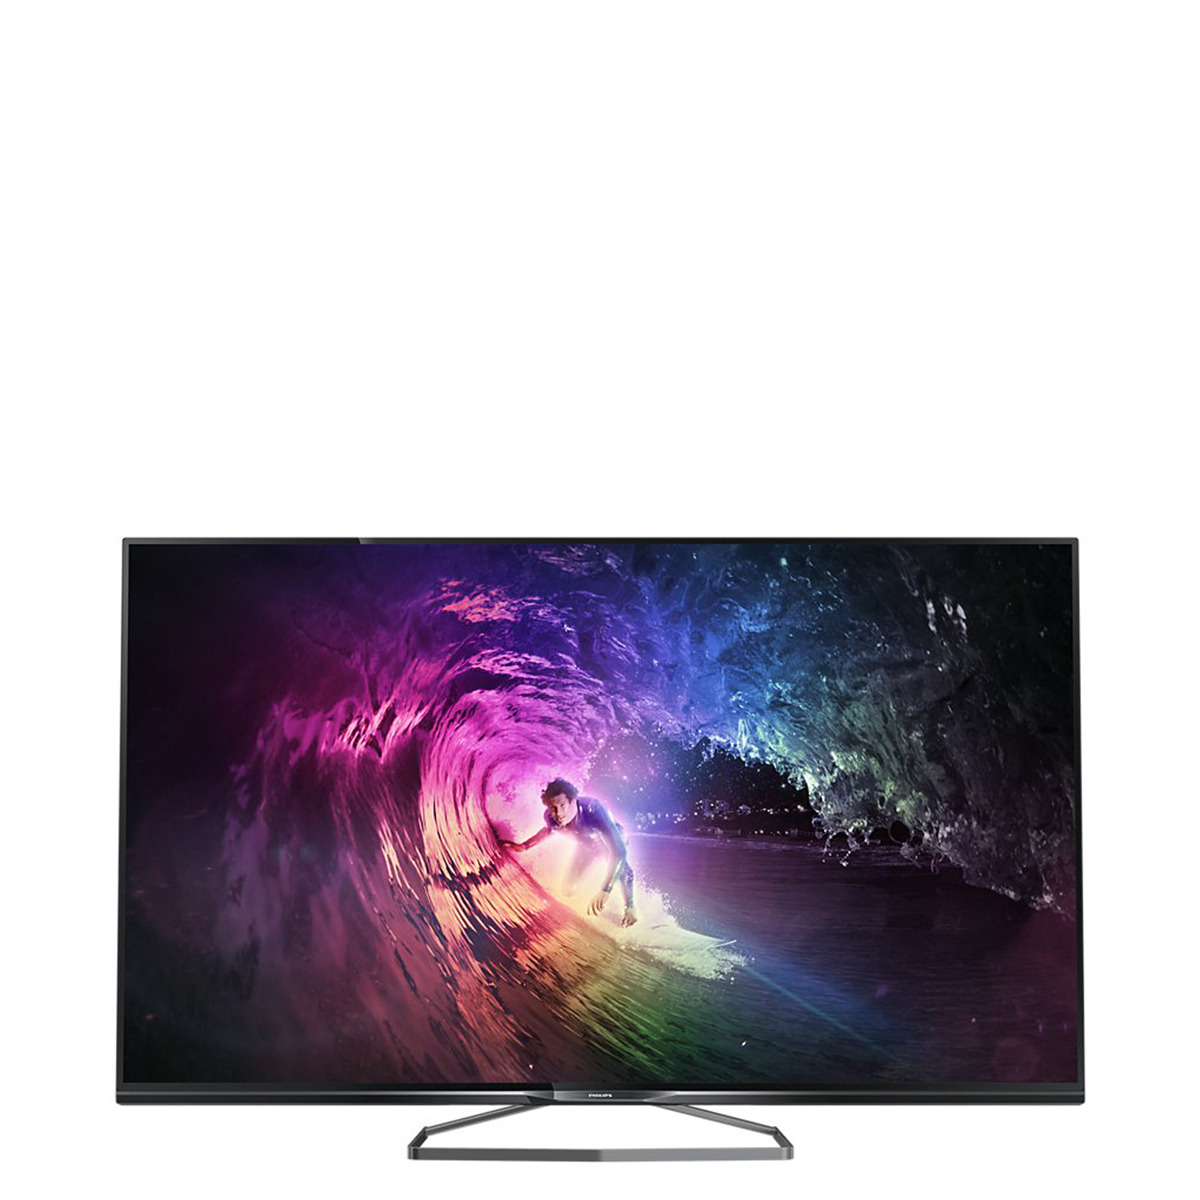 TV LED 50'' Philips 50PUK6809 UHD 4K, 3D, Wi-Fi y Smart TV